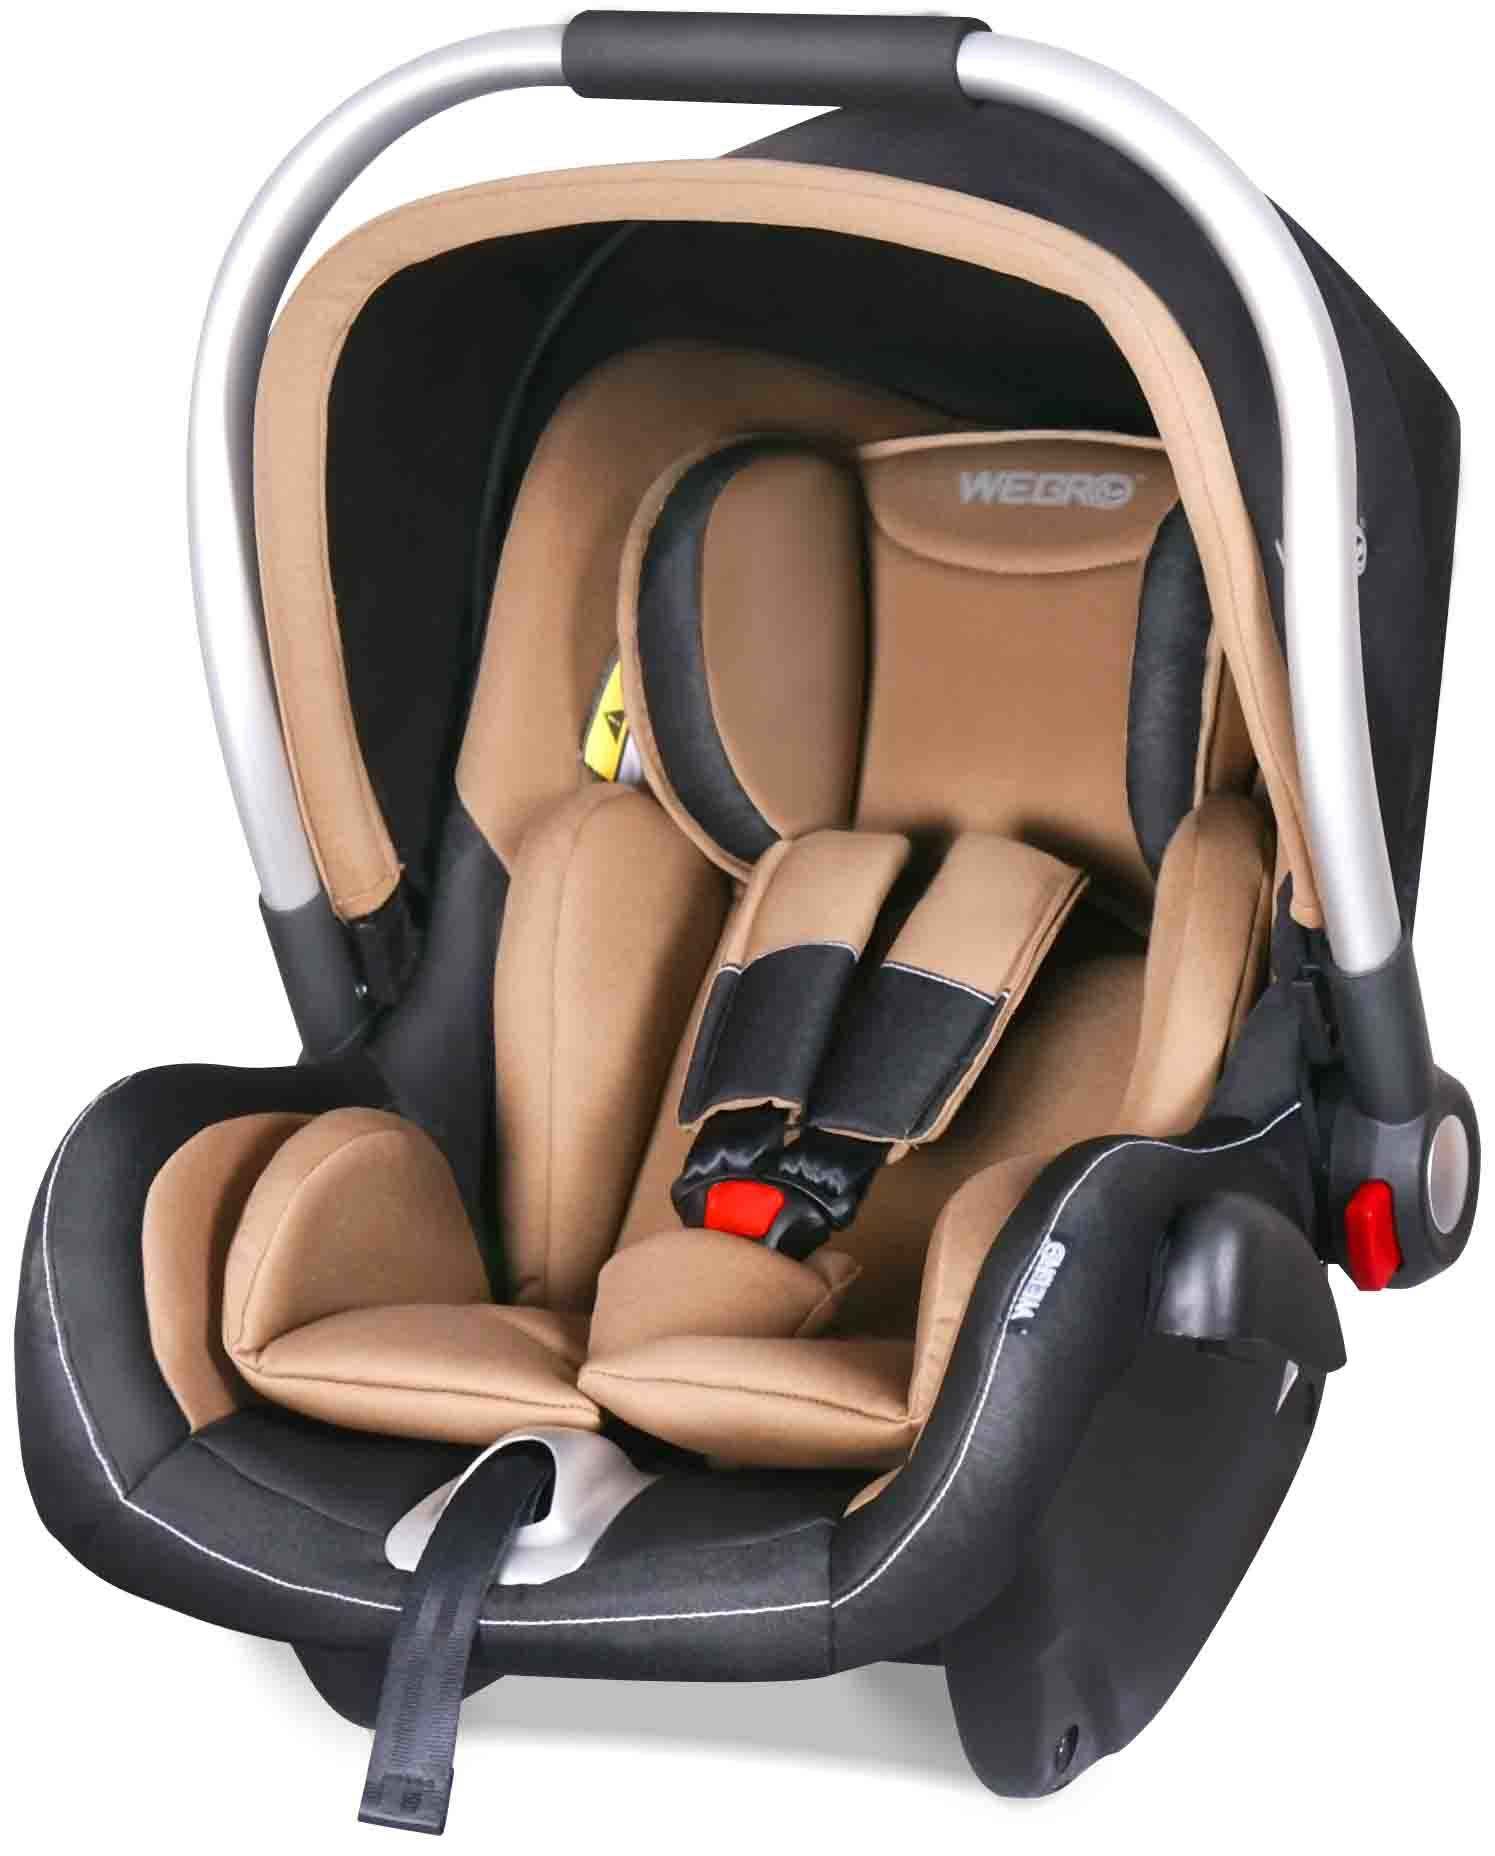 we04 joyous baby car seats baby carrier safety car seats group0 0 13kgs acorn we04 joyous. Black Bedroom Furniture Sets. Home Design Ideas